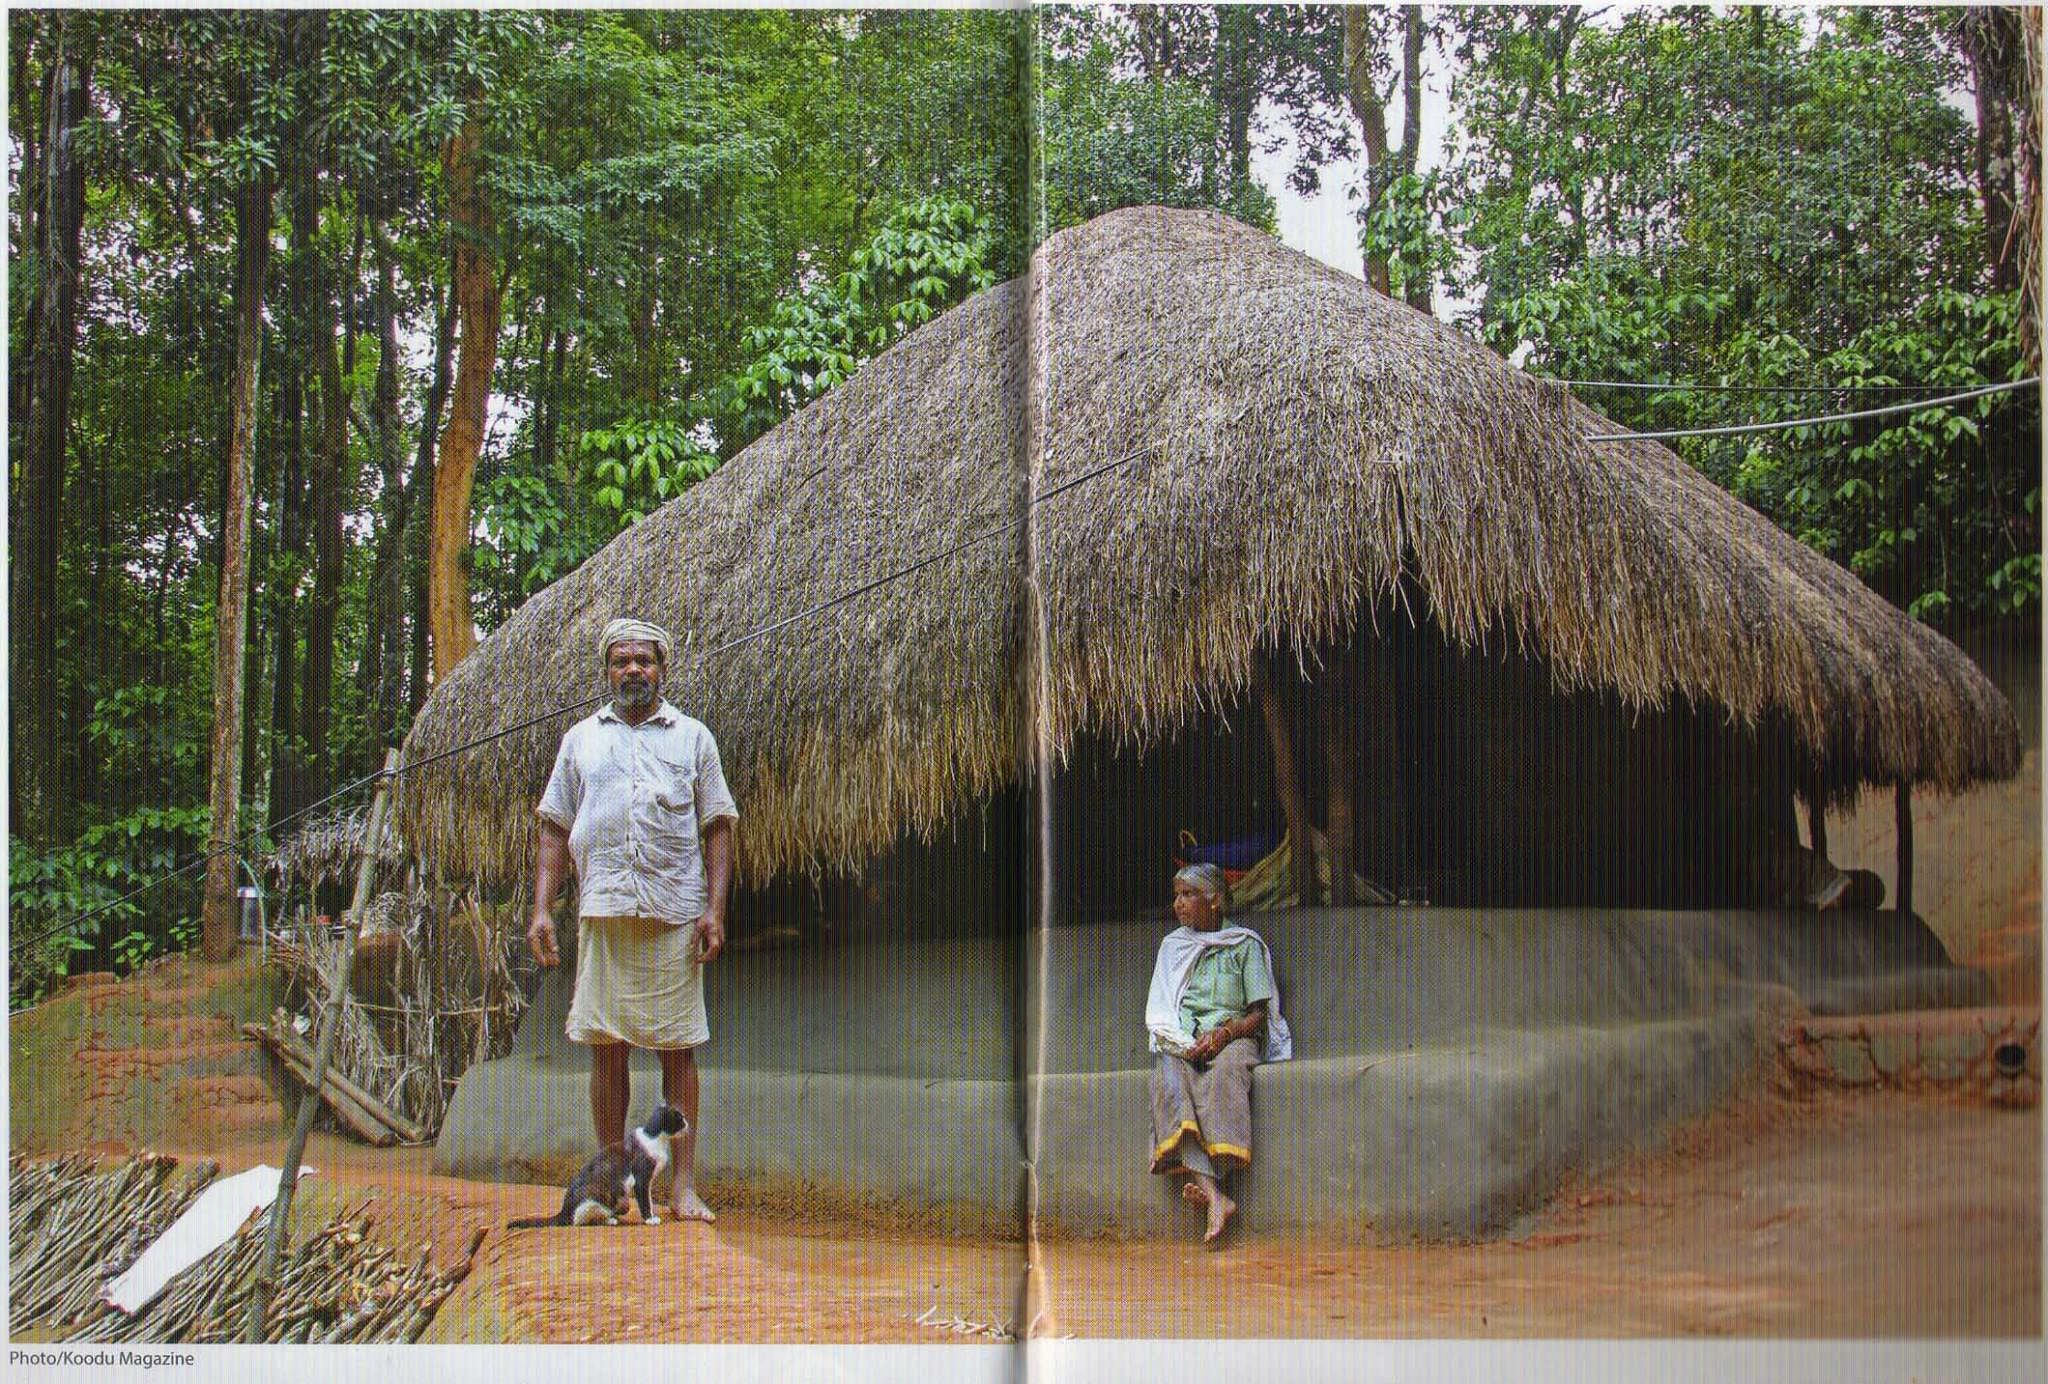 Kerala's 'Guardian of Native Paddy' Lives in a 150-YO Home Made of